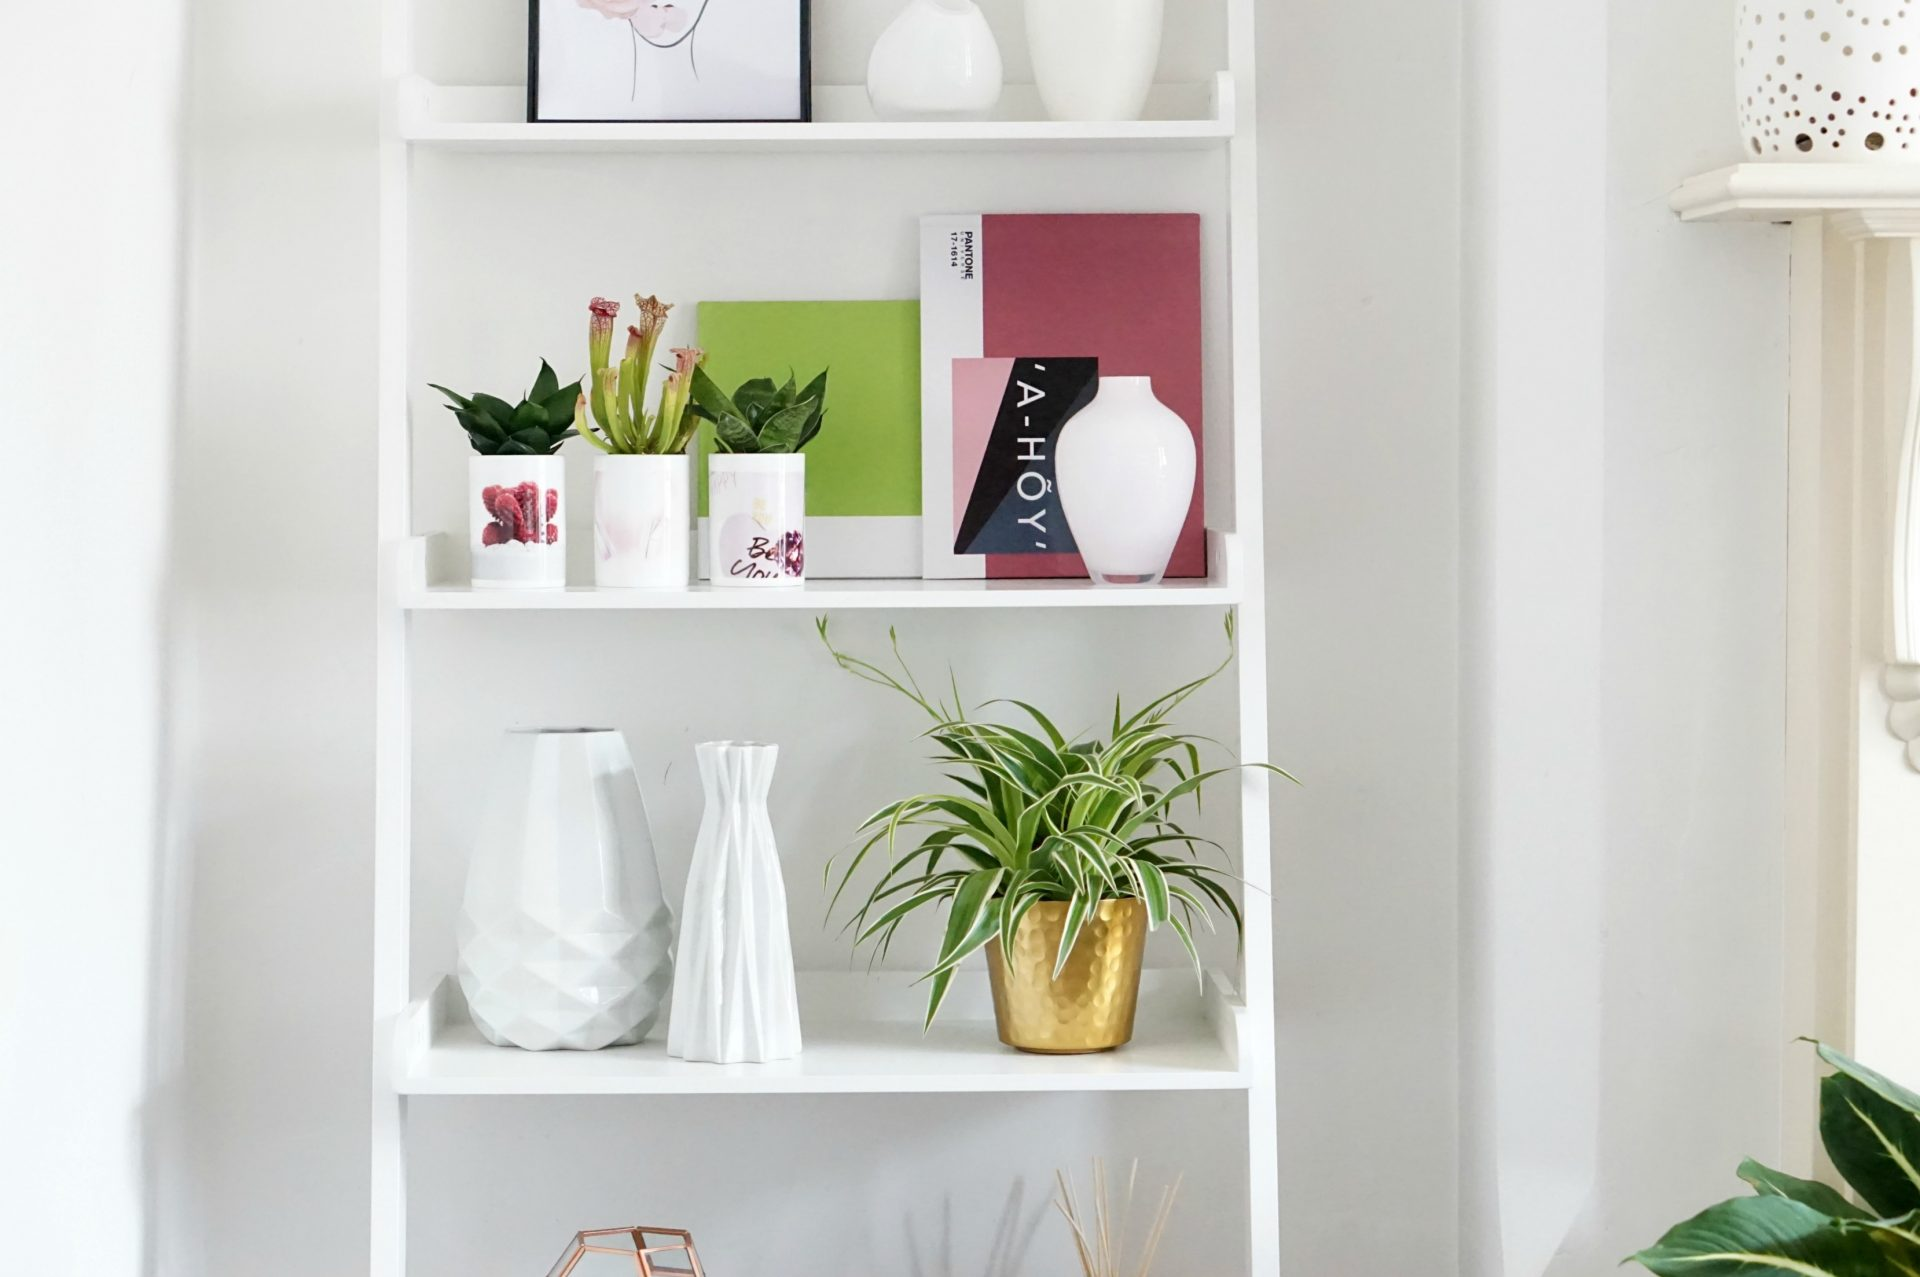 white shelf containing mugs with succulents, Pantone photo books vases and plants.